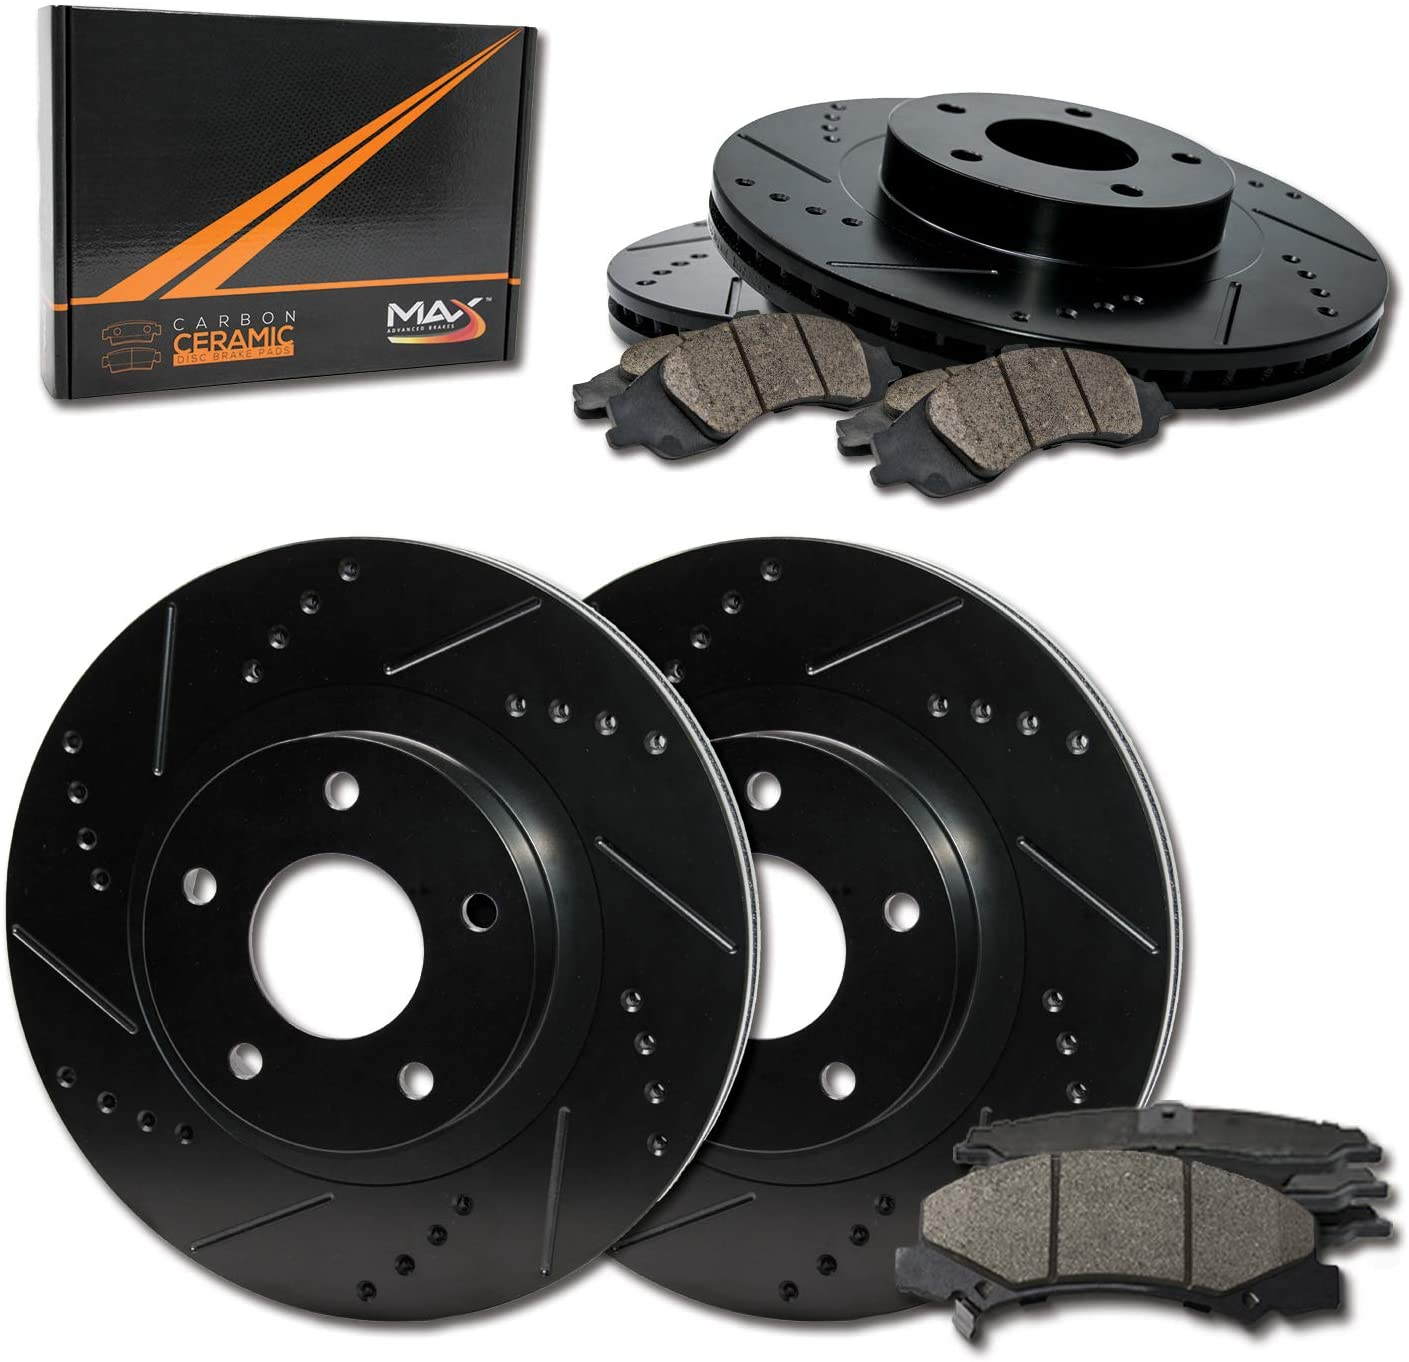 2004-2010 BMW X3 Premium Slotted Drilled Rotors + Ceramic Pads KT050233 Fits Max Brakes Front /& Rear Performance Brake Kit